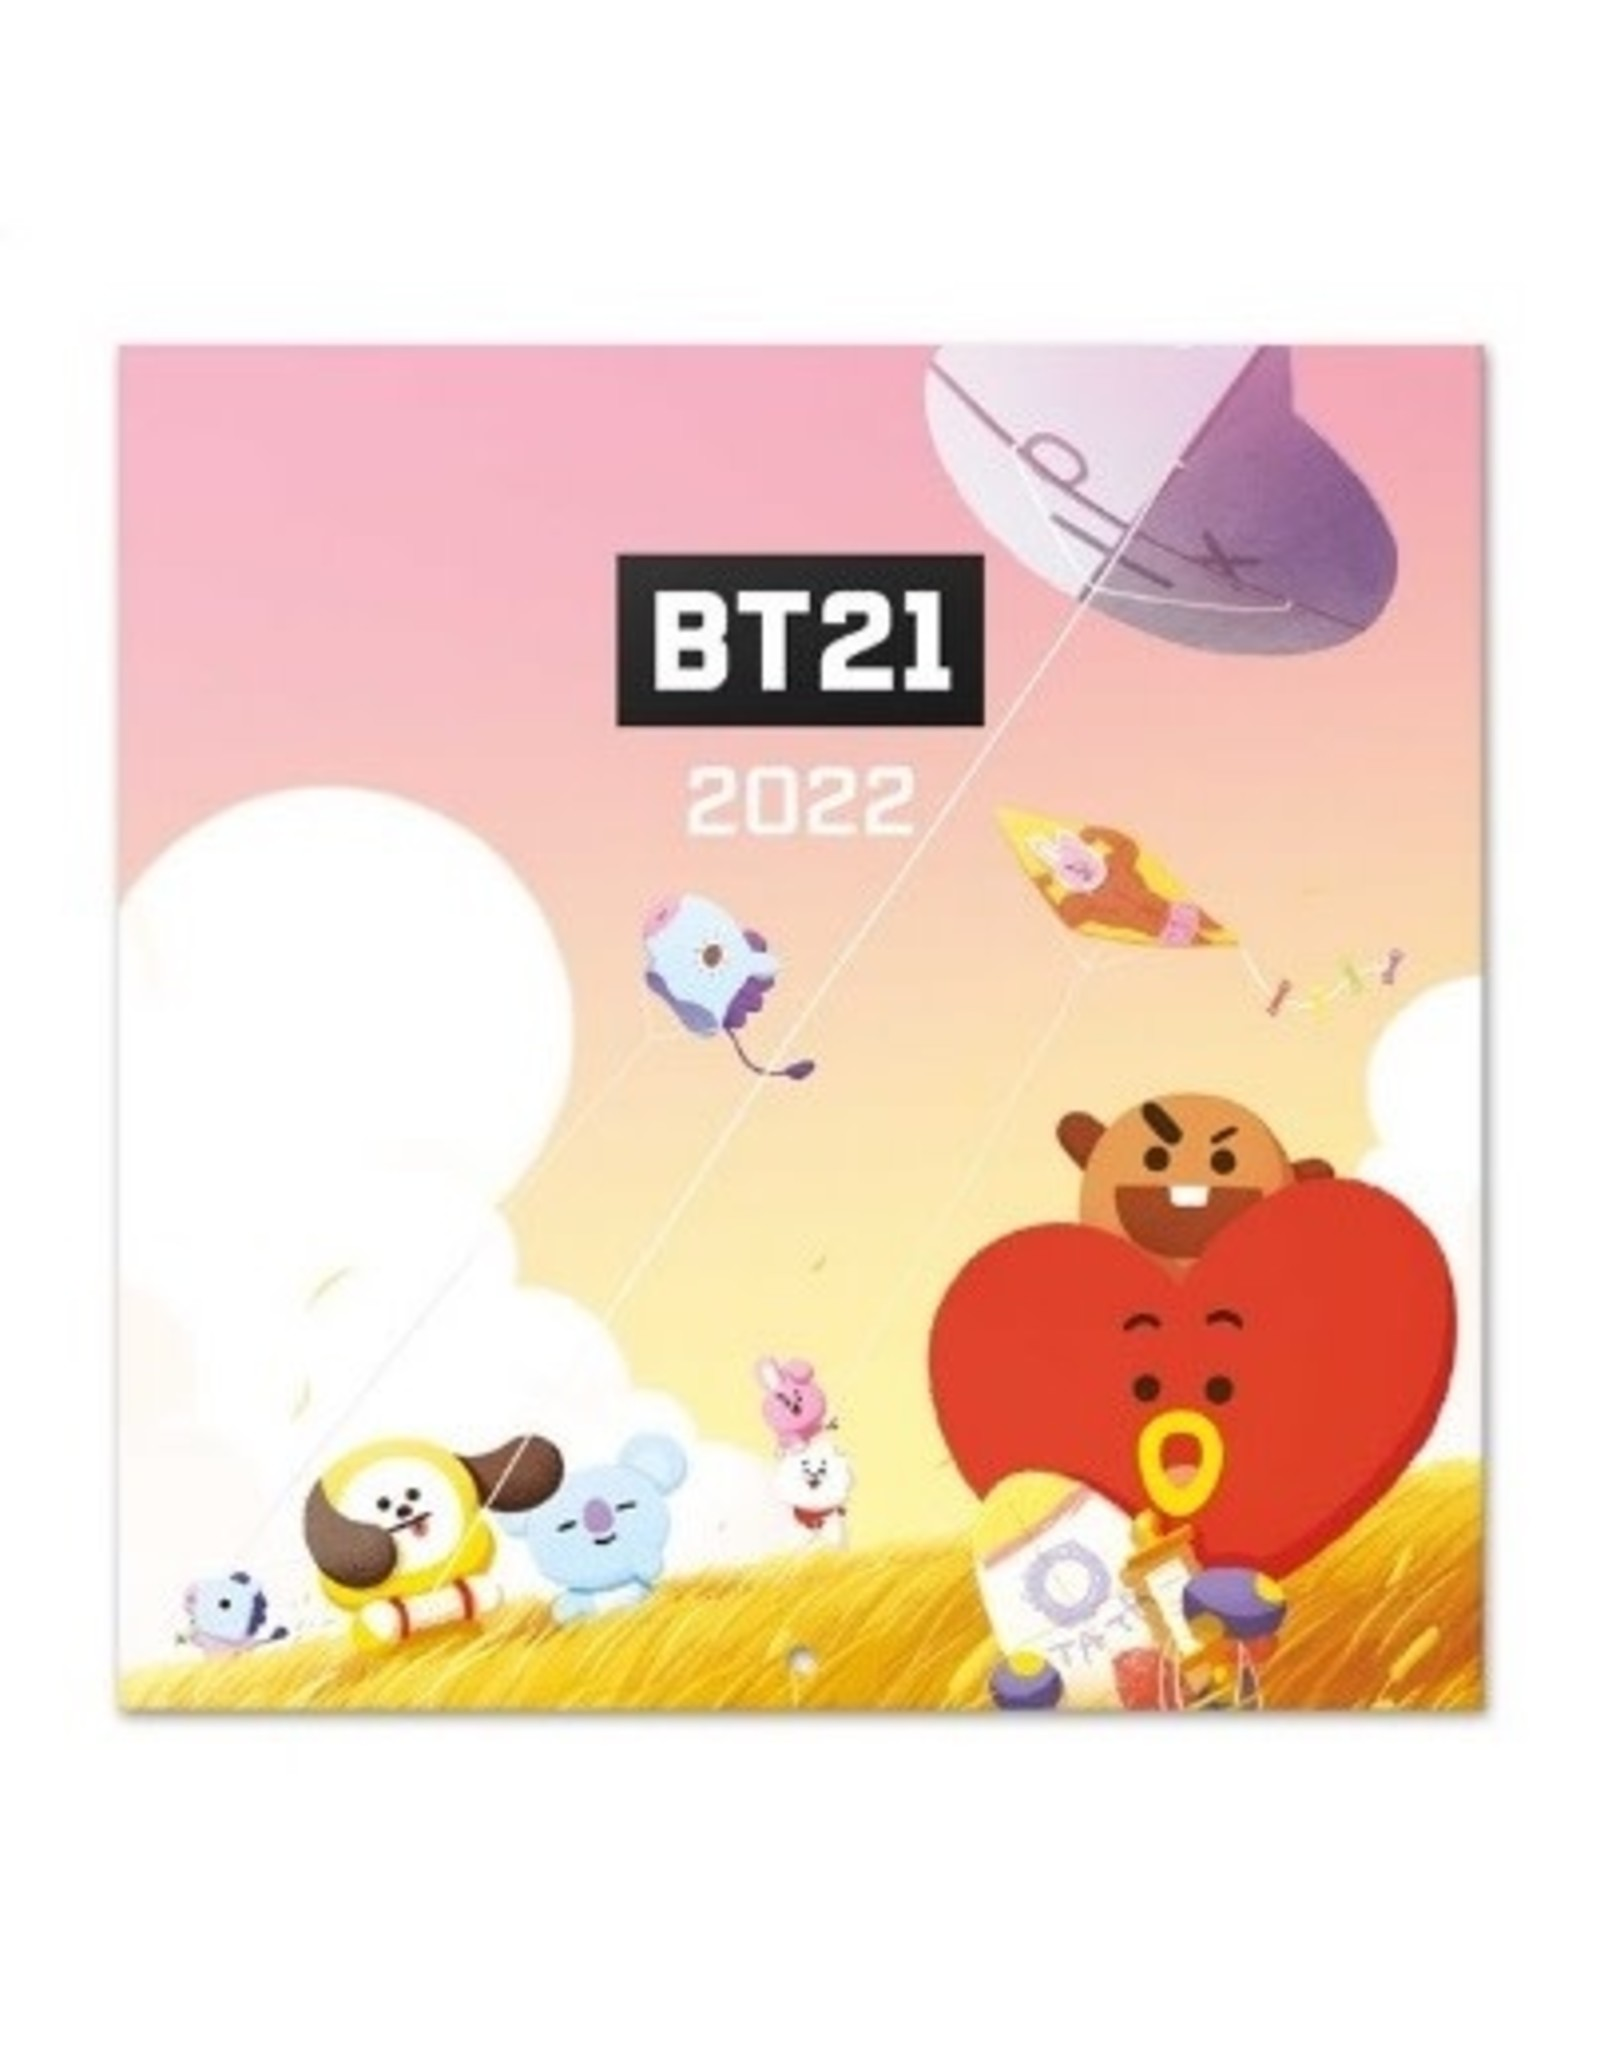 calendar 2022 with BT21 pictures